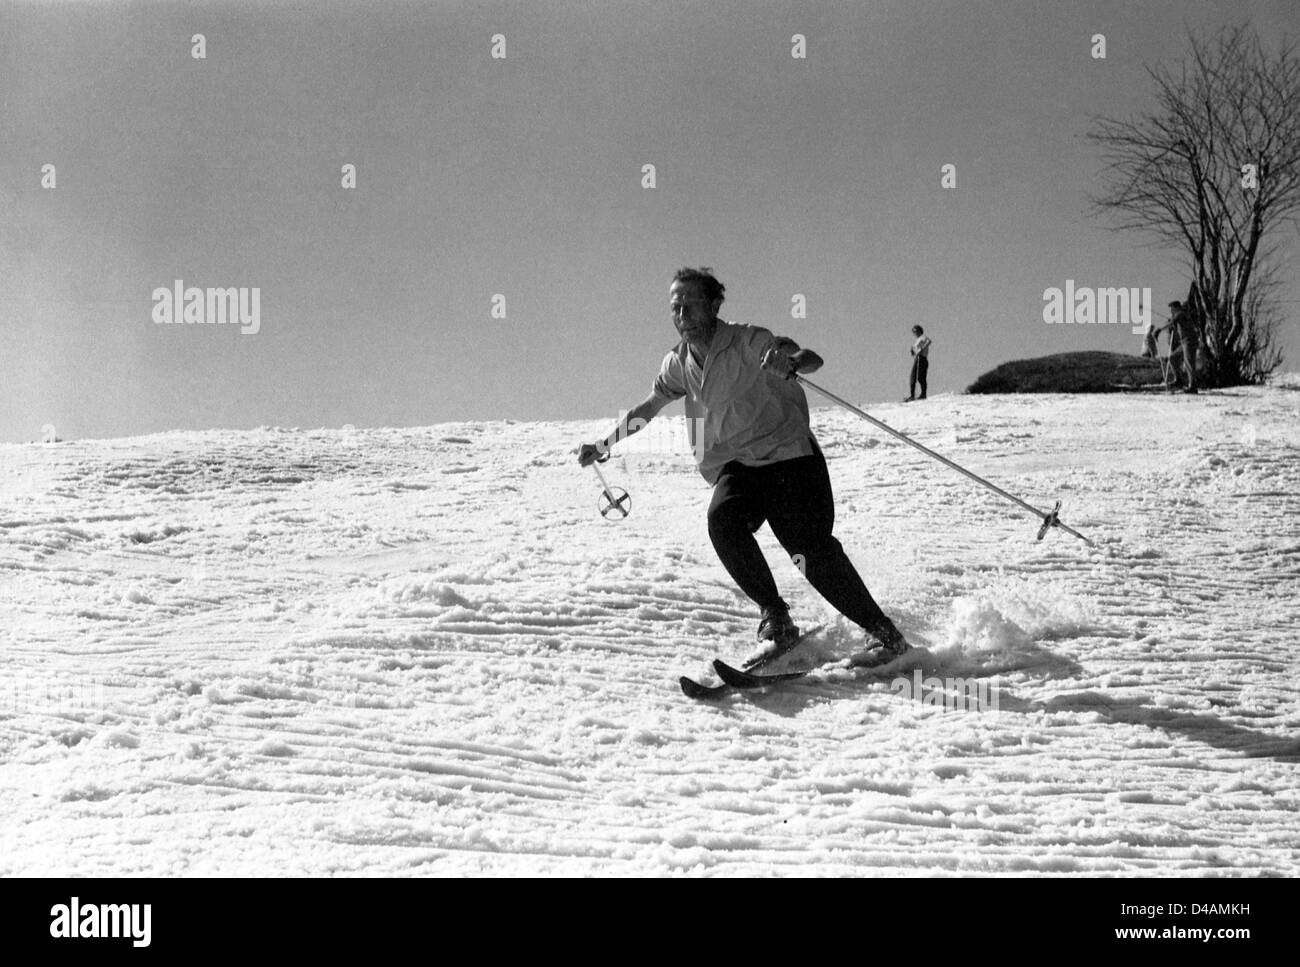 Oberwiesenthal, GDR, a man goes skiing Stock Photo